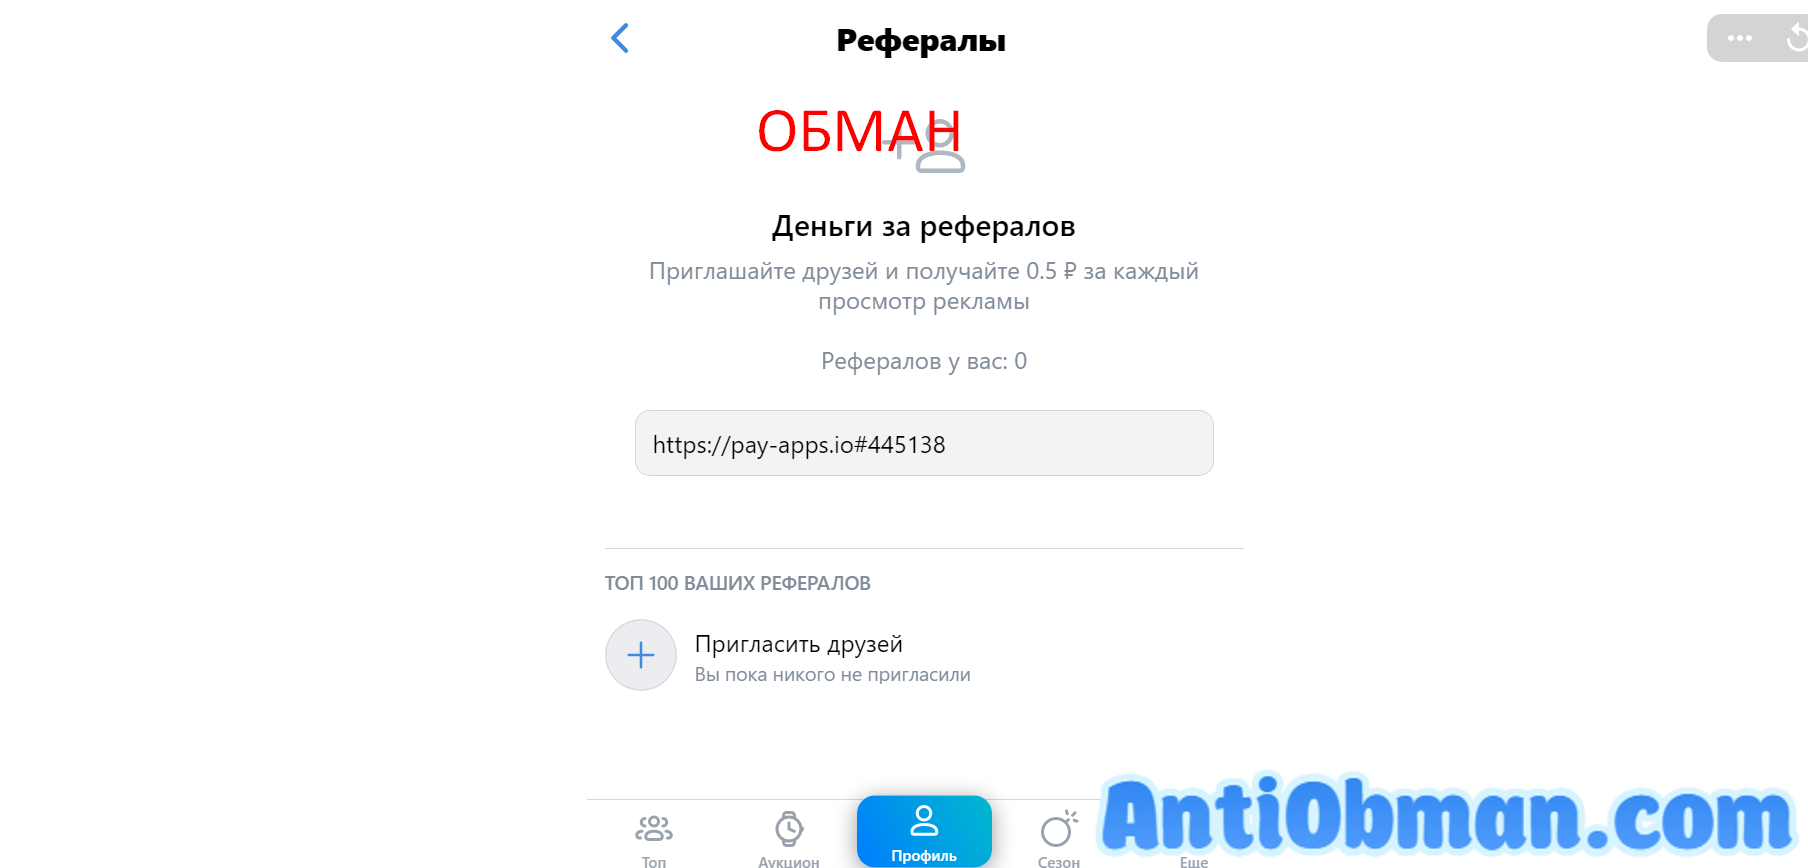 Pay-Apps.io обман